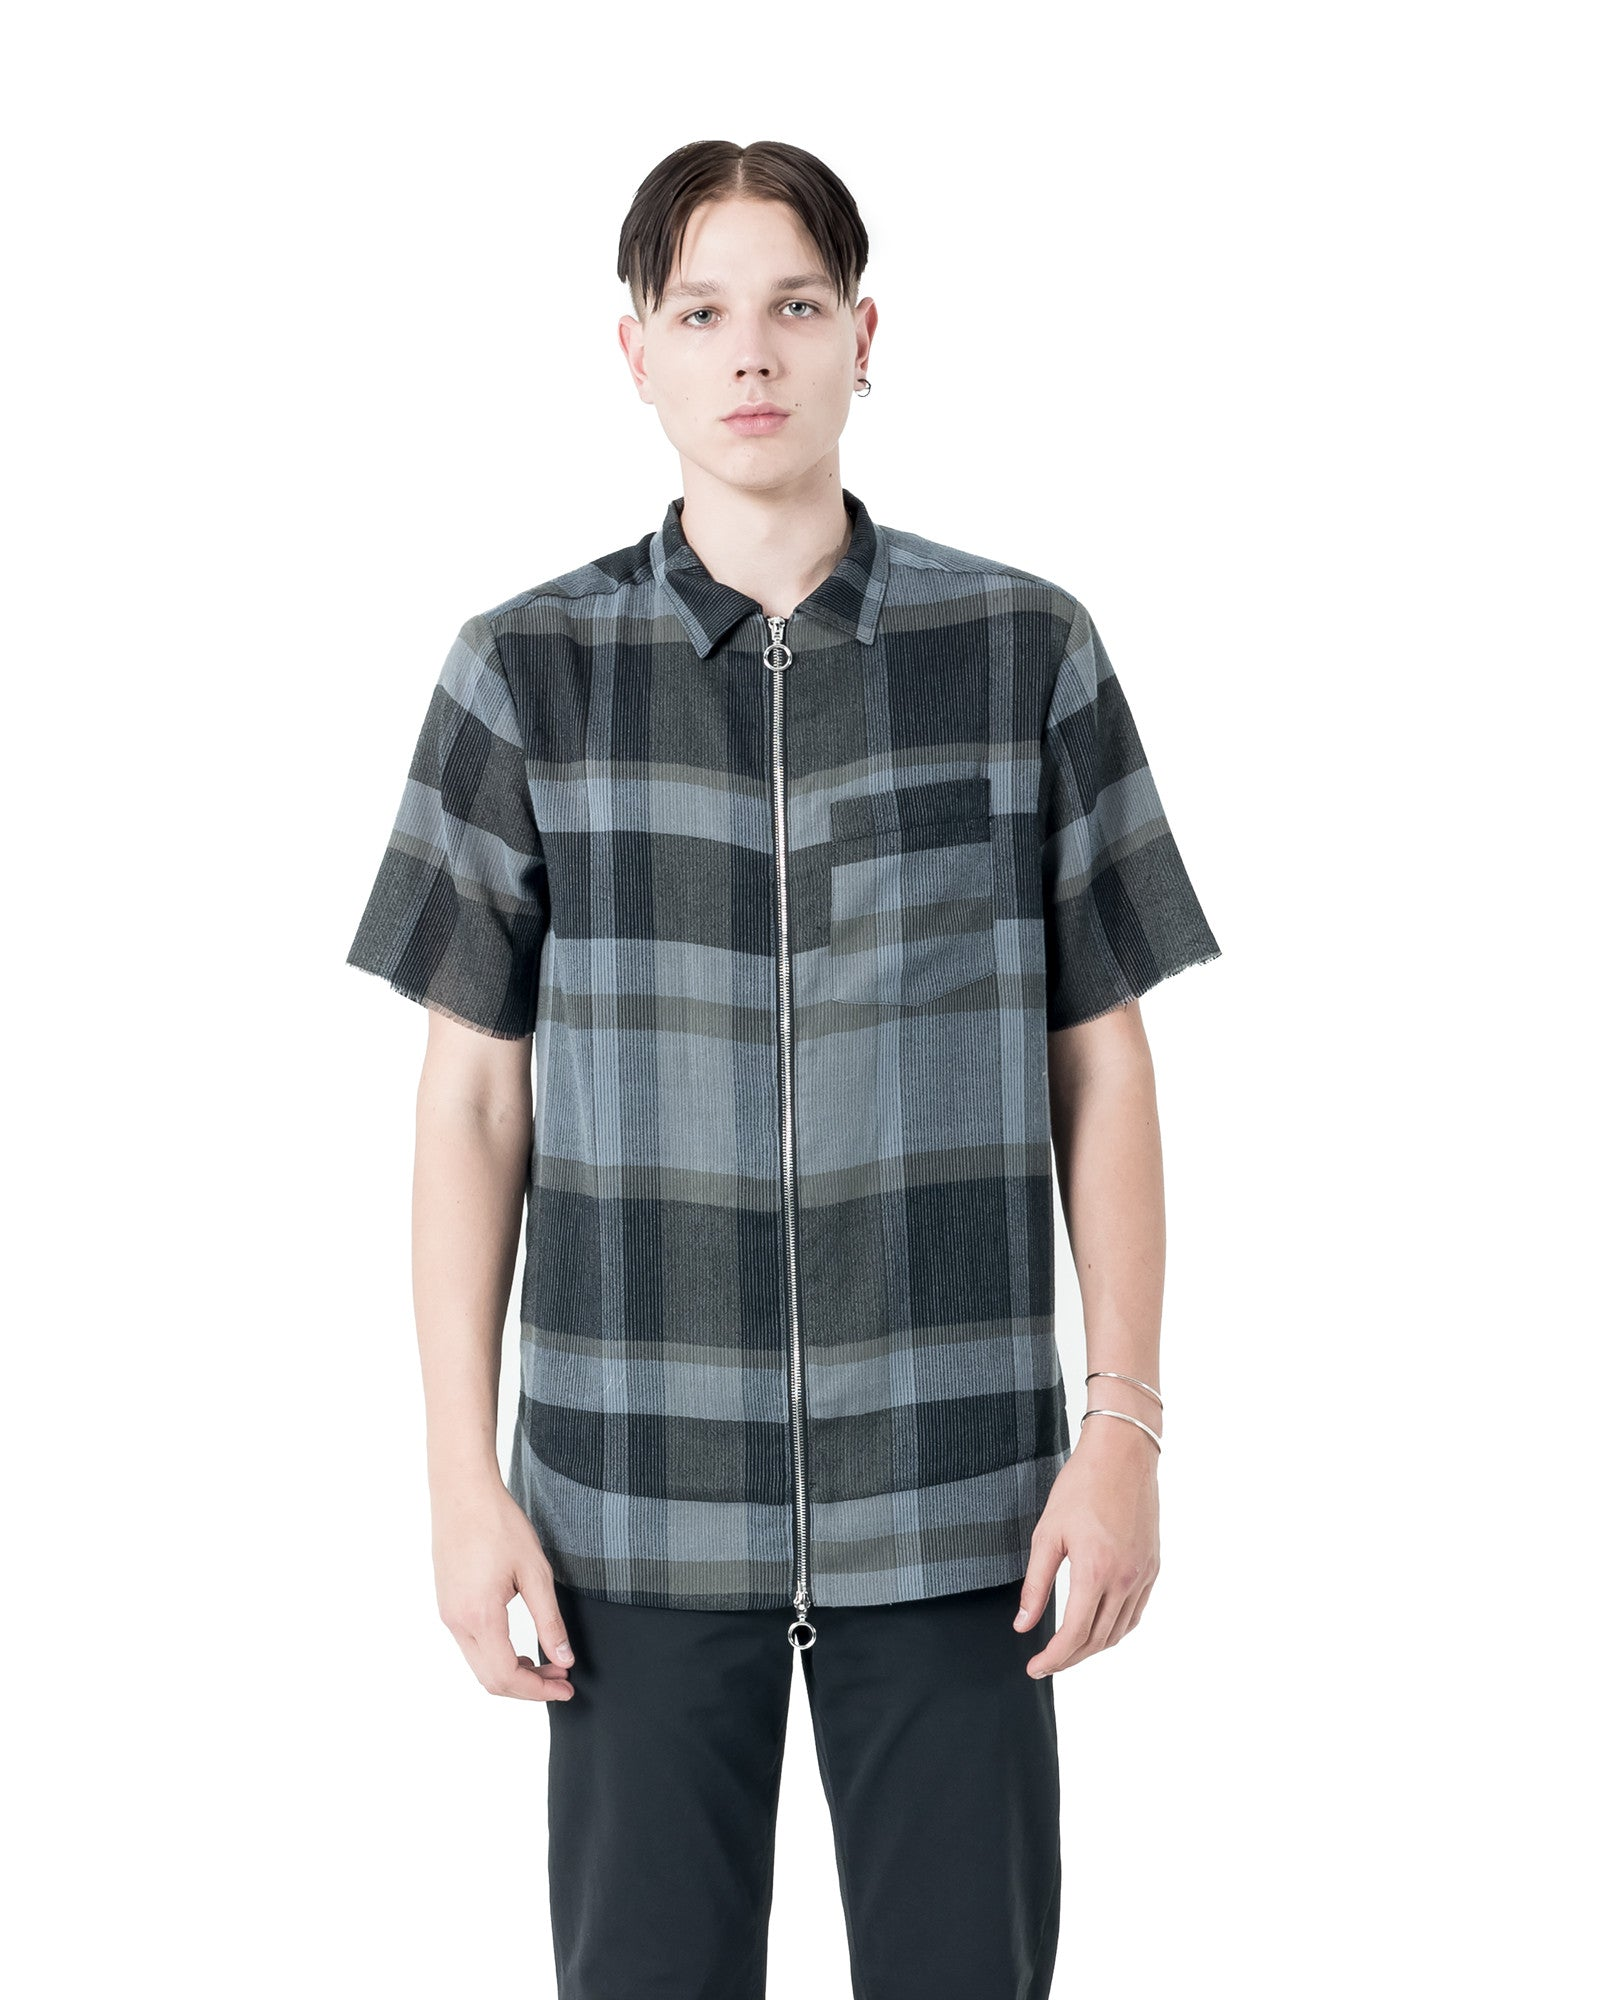 Ome Zip Up Shirt - Navy/Grey Plaid